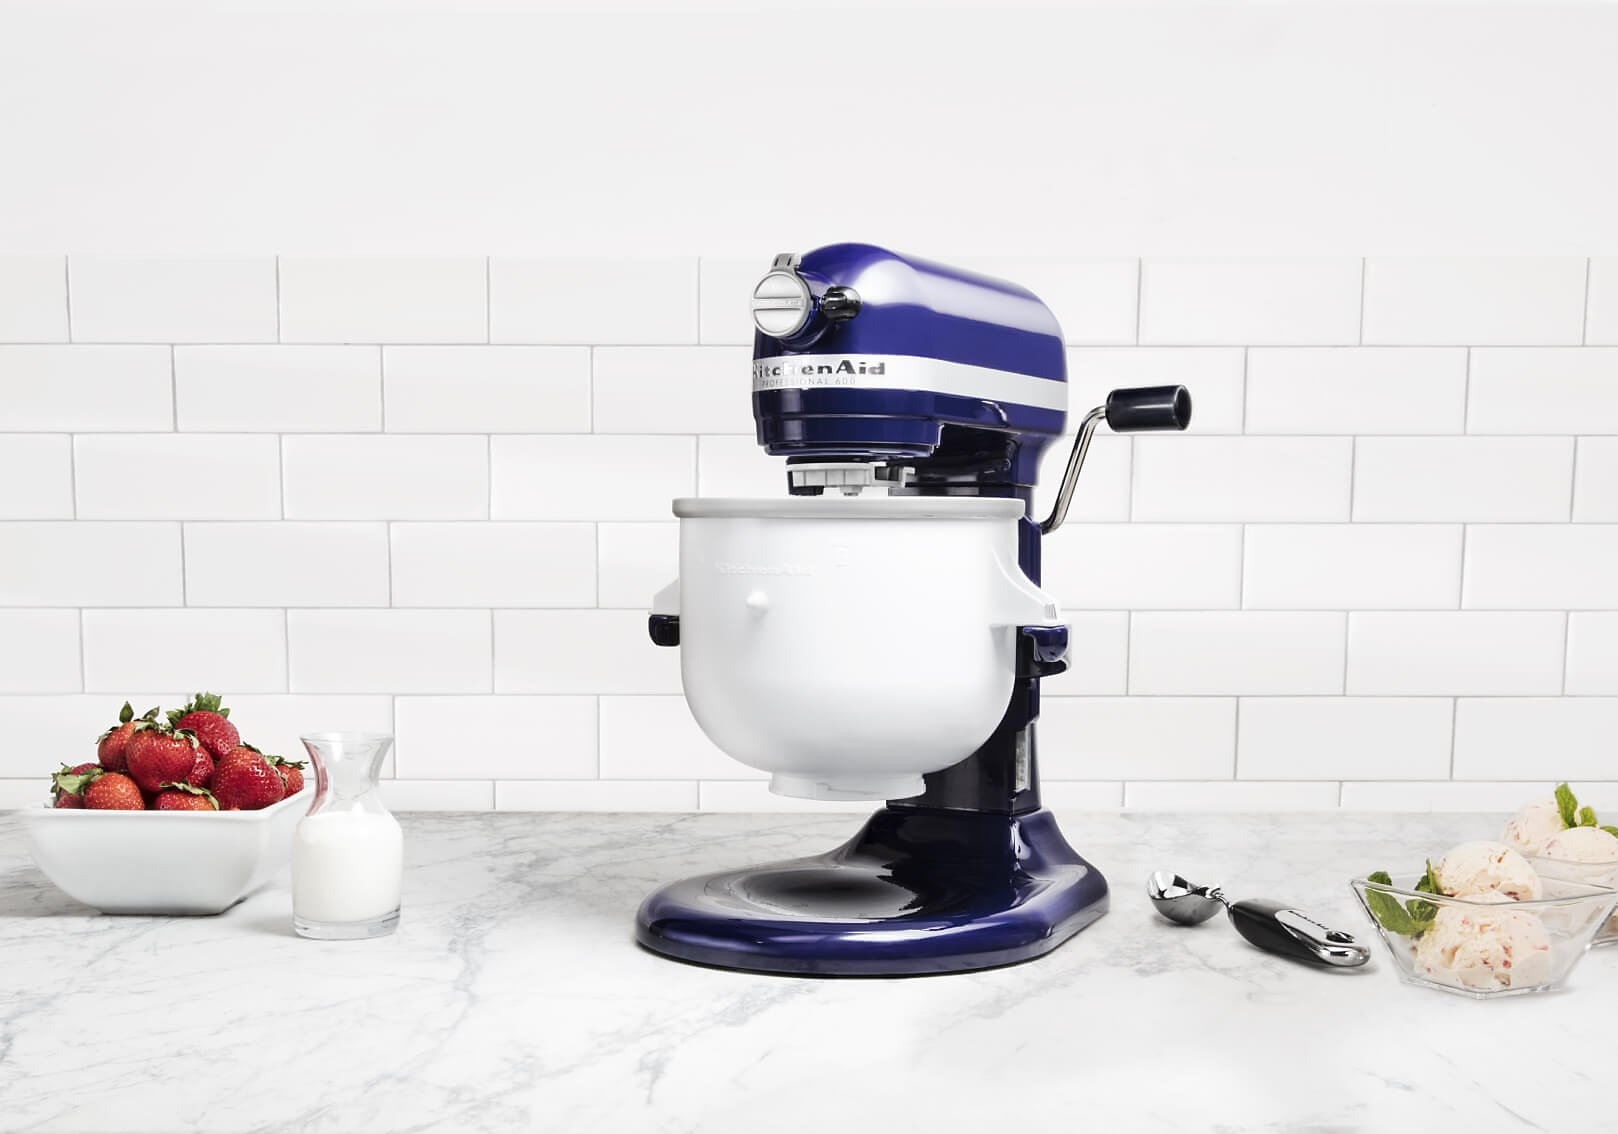 A KitchenAid® bowl-lift stand mixer with strawberries and milk.